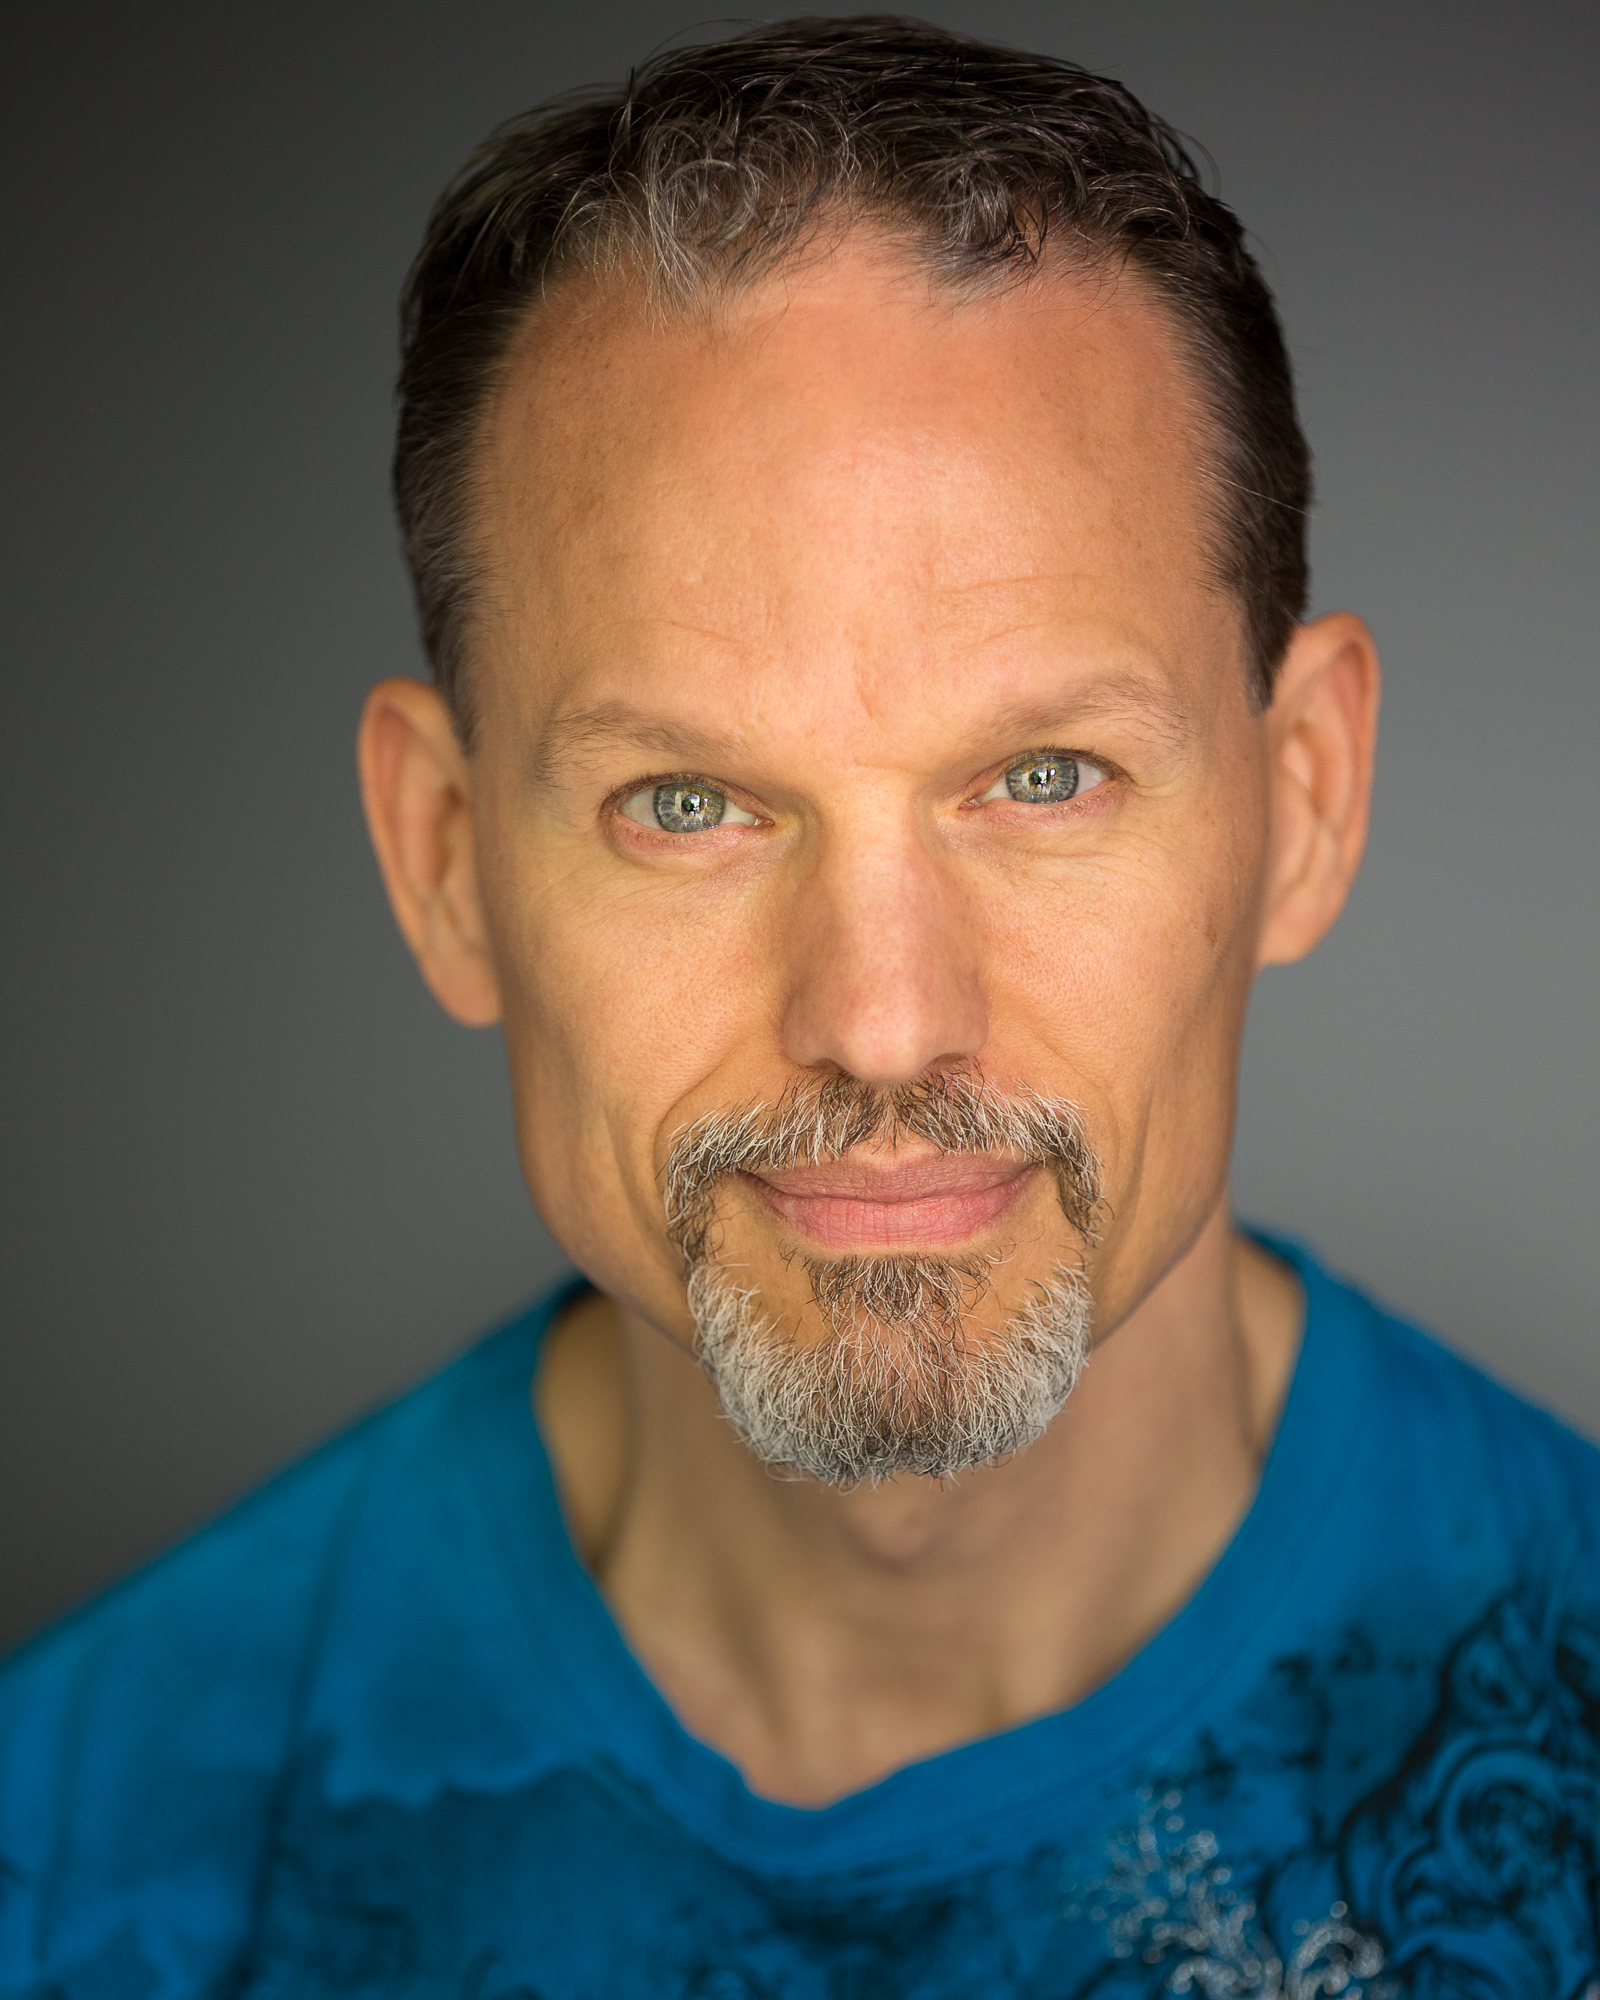 Appearances in Fantastic Beasts and Where To Find Them, Spectre, Blood Money,Actors headshots - Erick Hayden - Actor, Director, Sound Designer by  www.youdeservethisheadshots.com